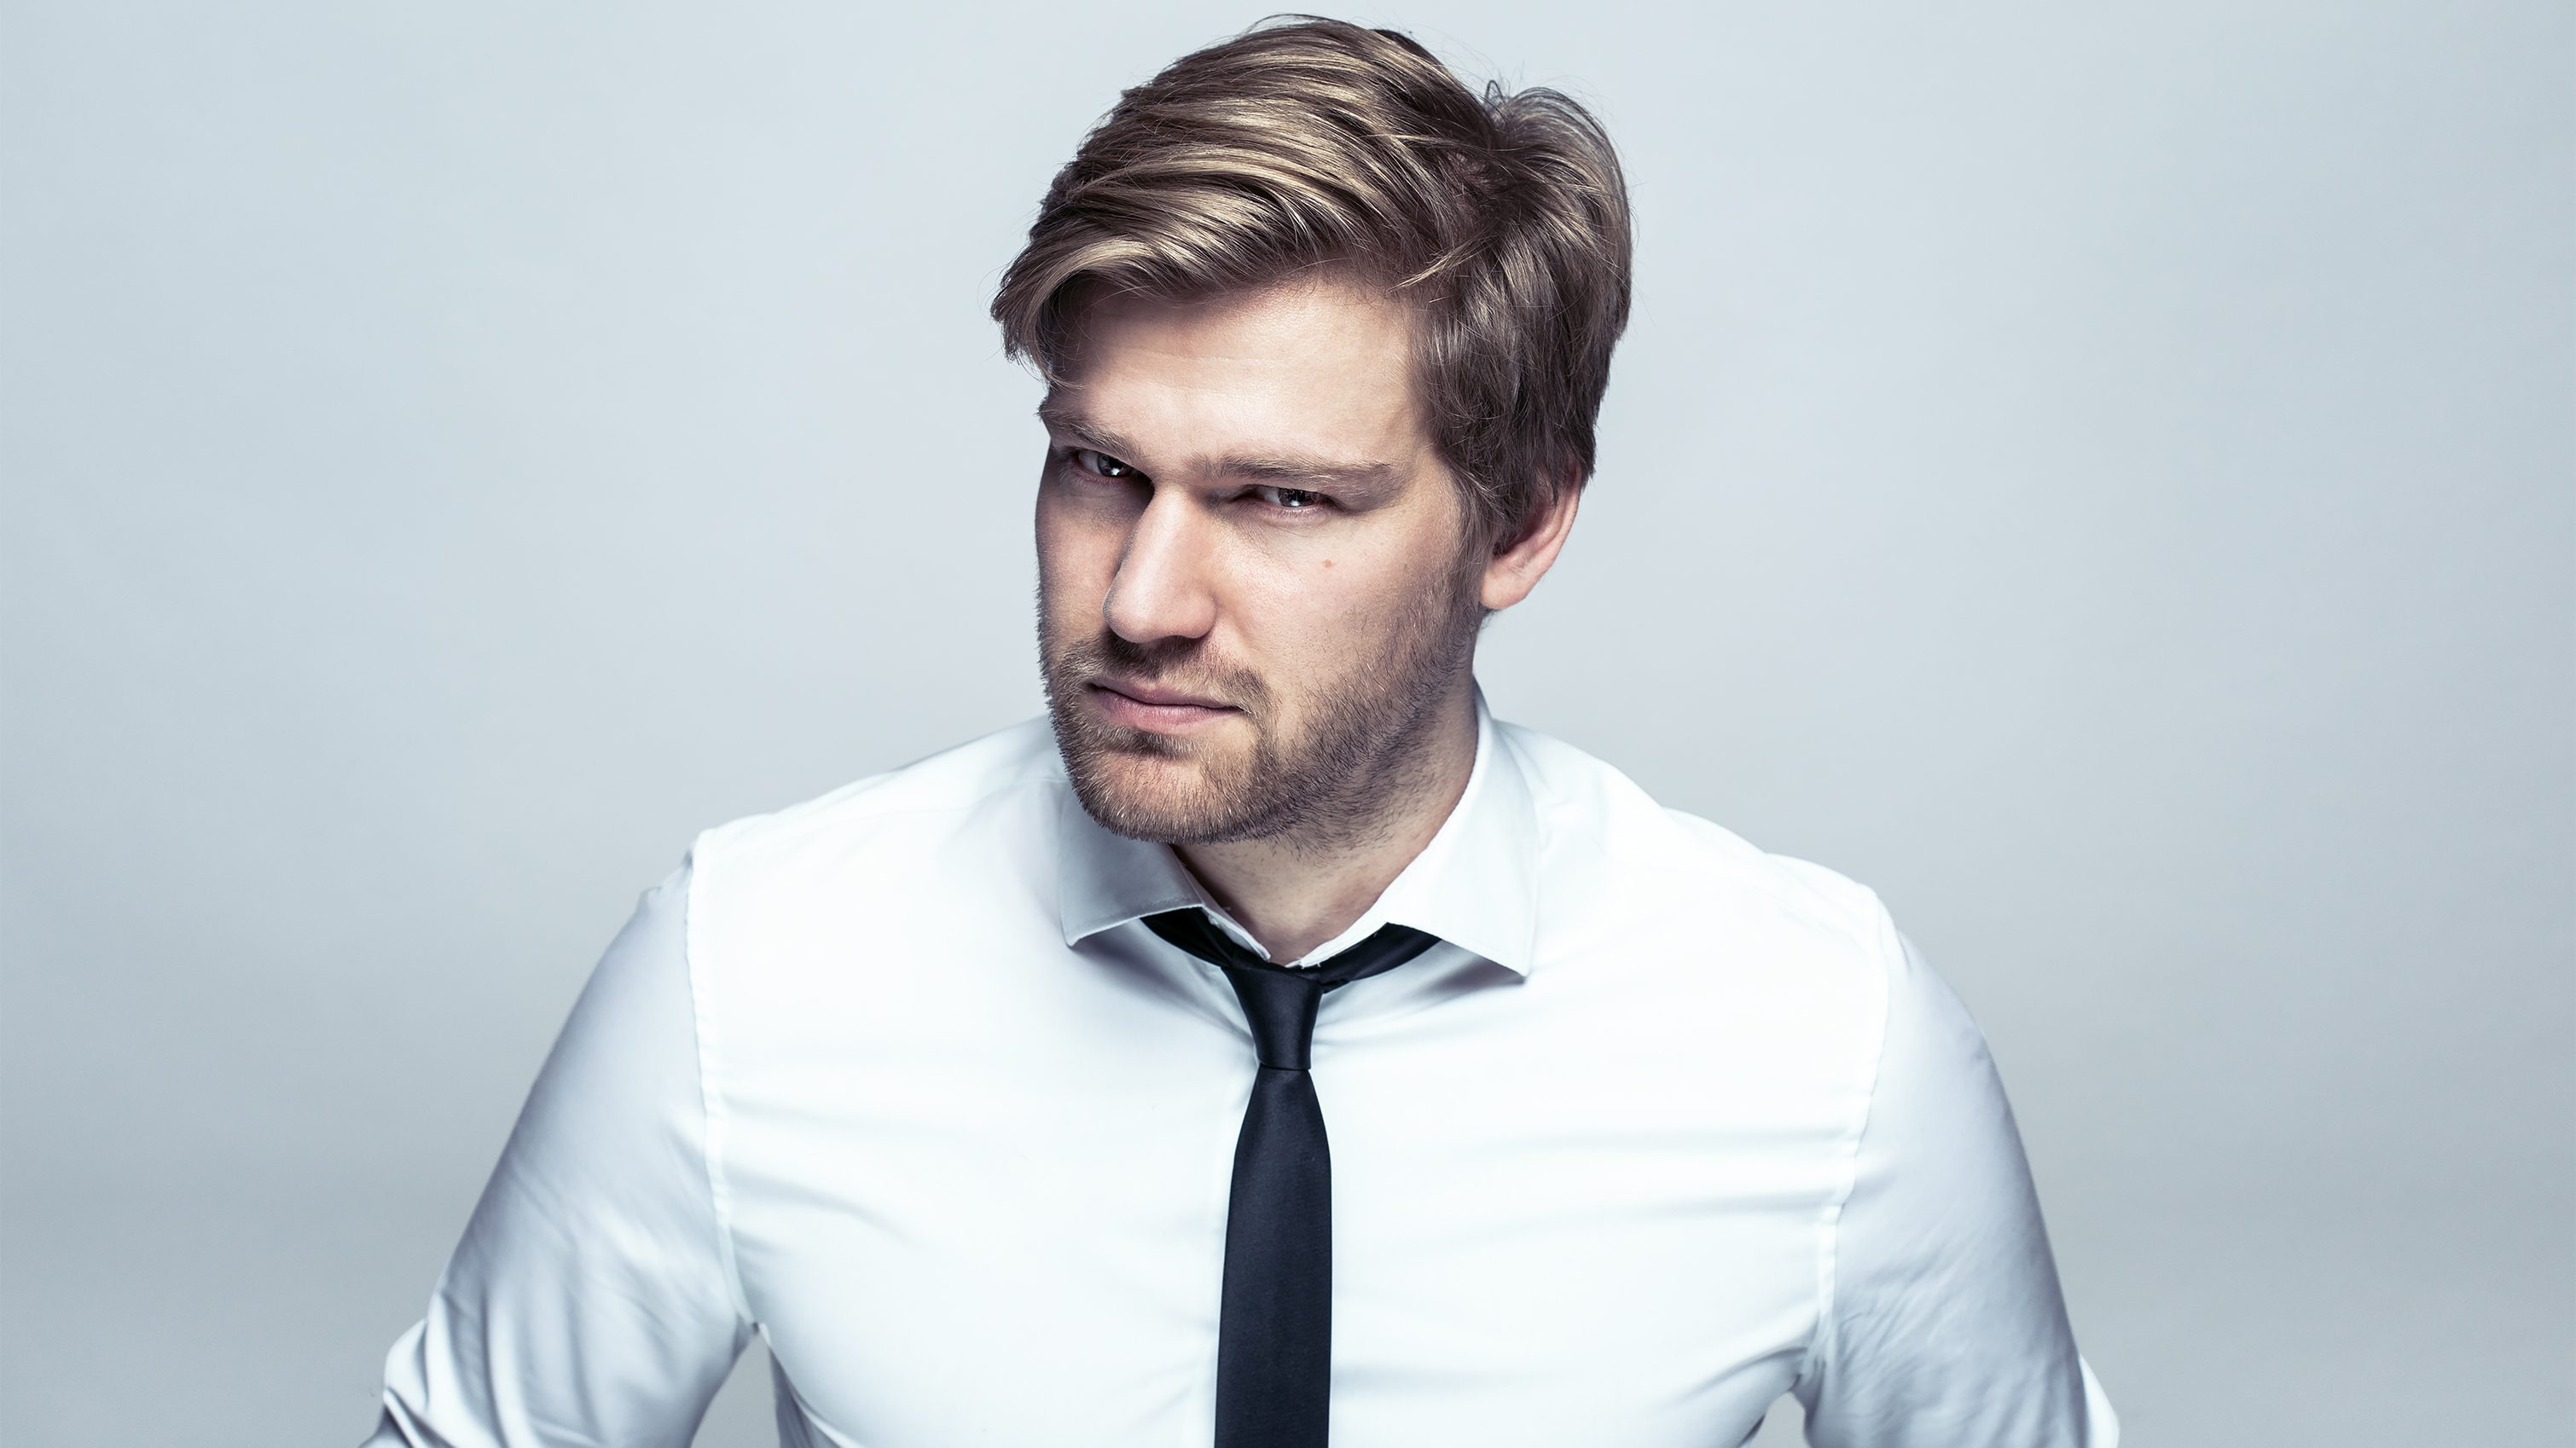 Shahak Shapira beat Facebook bots, attacked Twitter for hate speech, and satirized Instagrammers